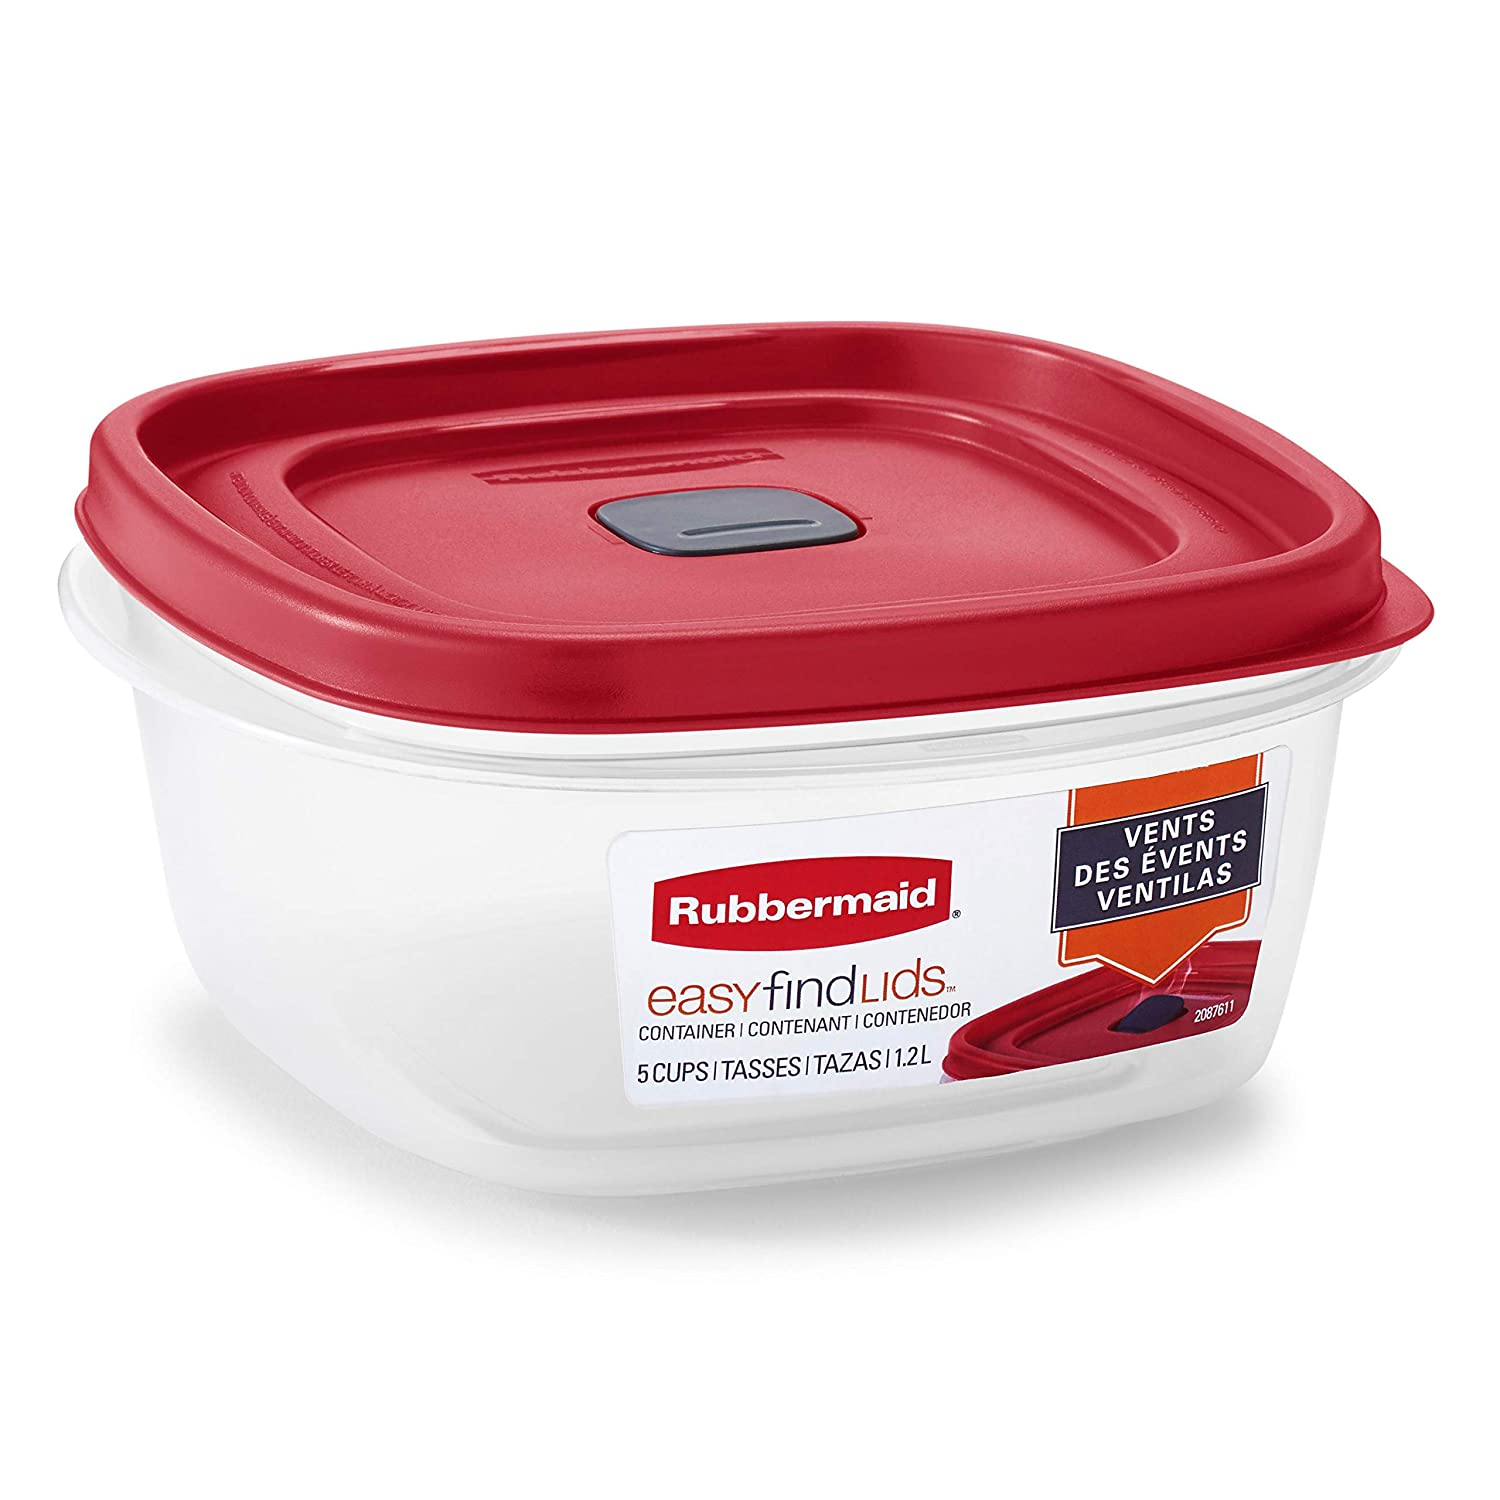 Rubbermaid Easy Find Lids 5-Cup Food Storage and Organization Container, Racer Red